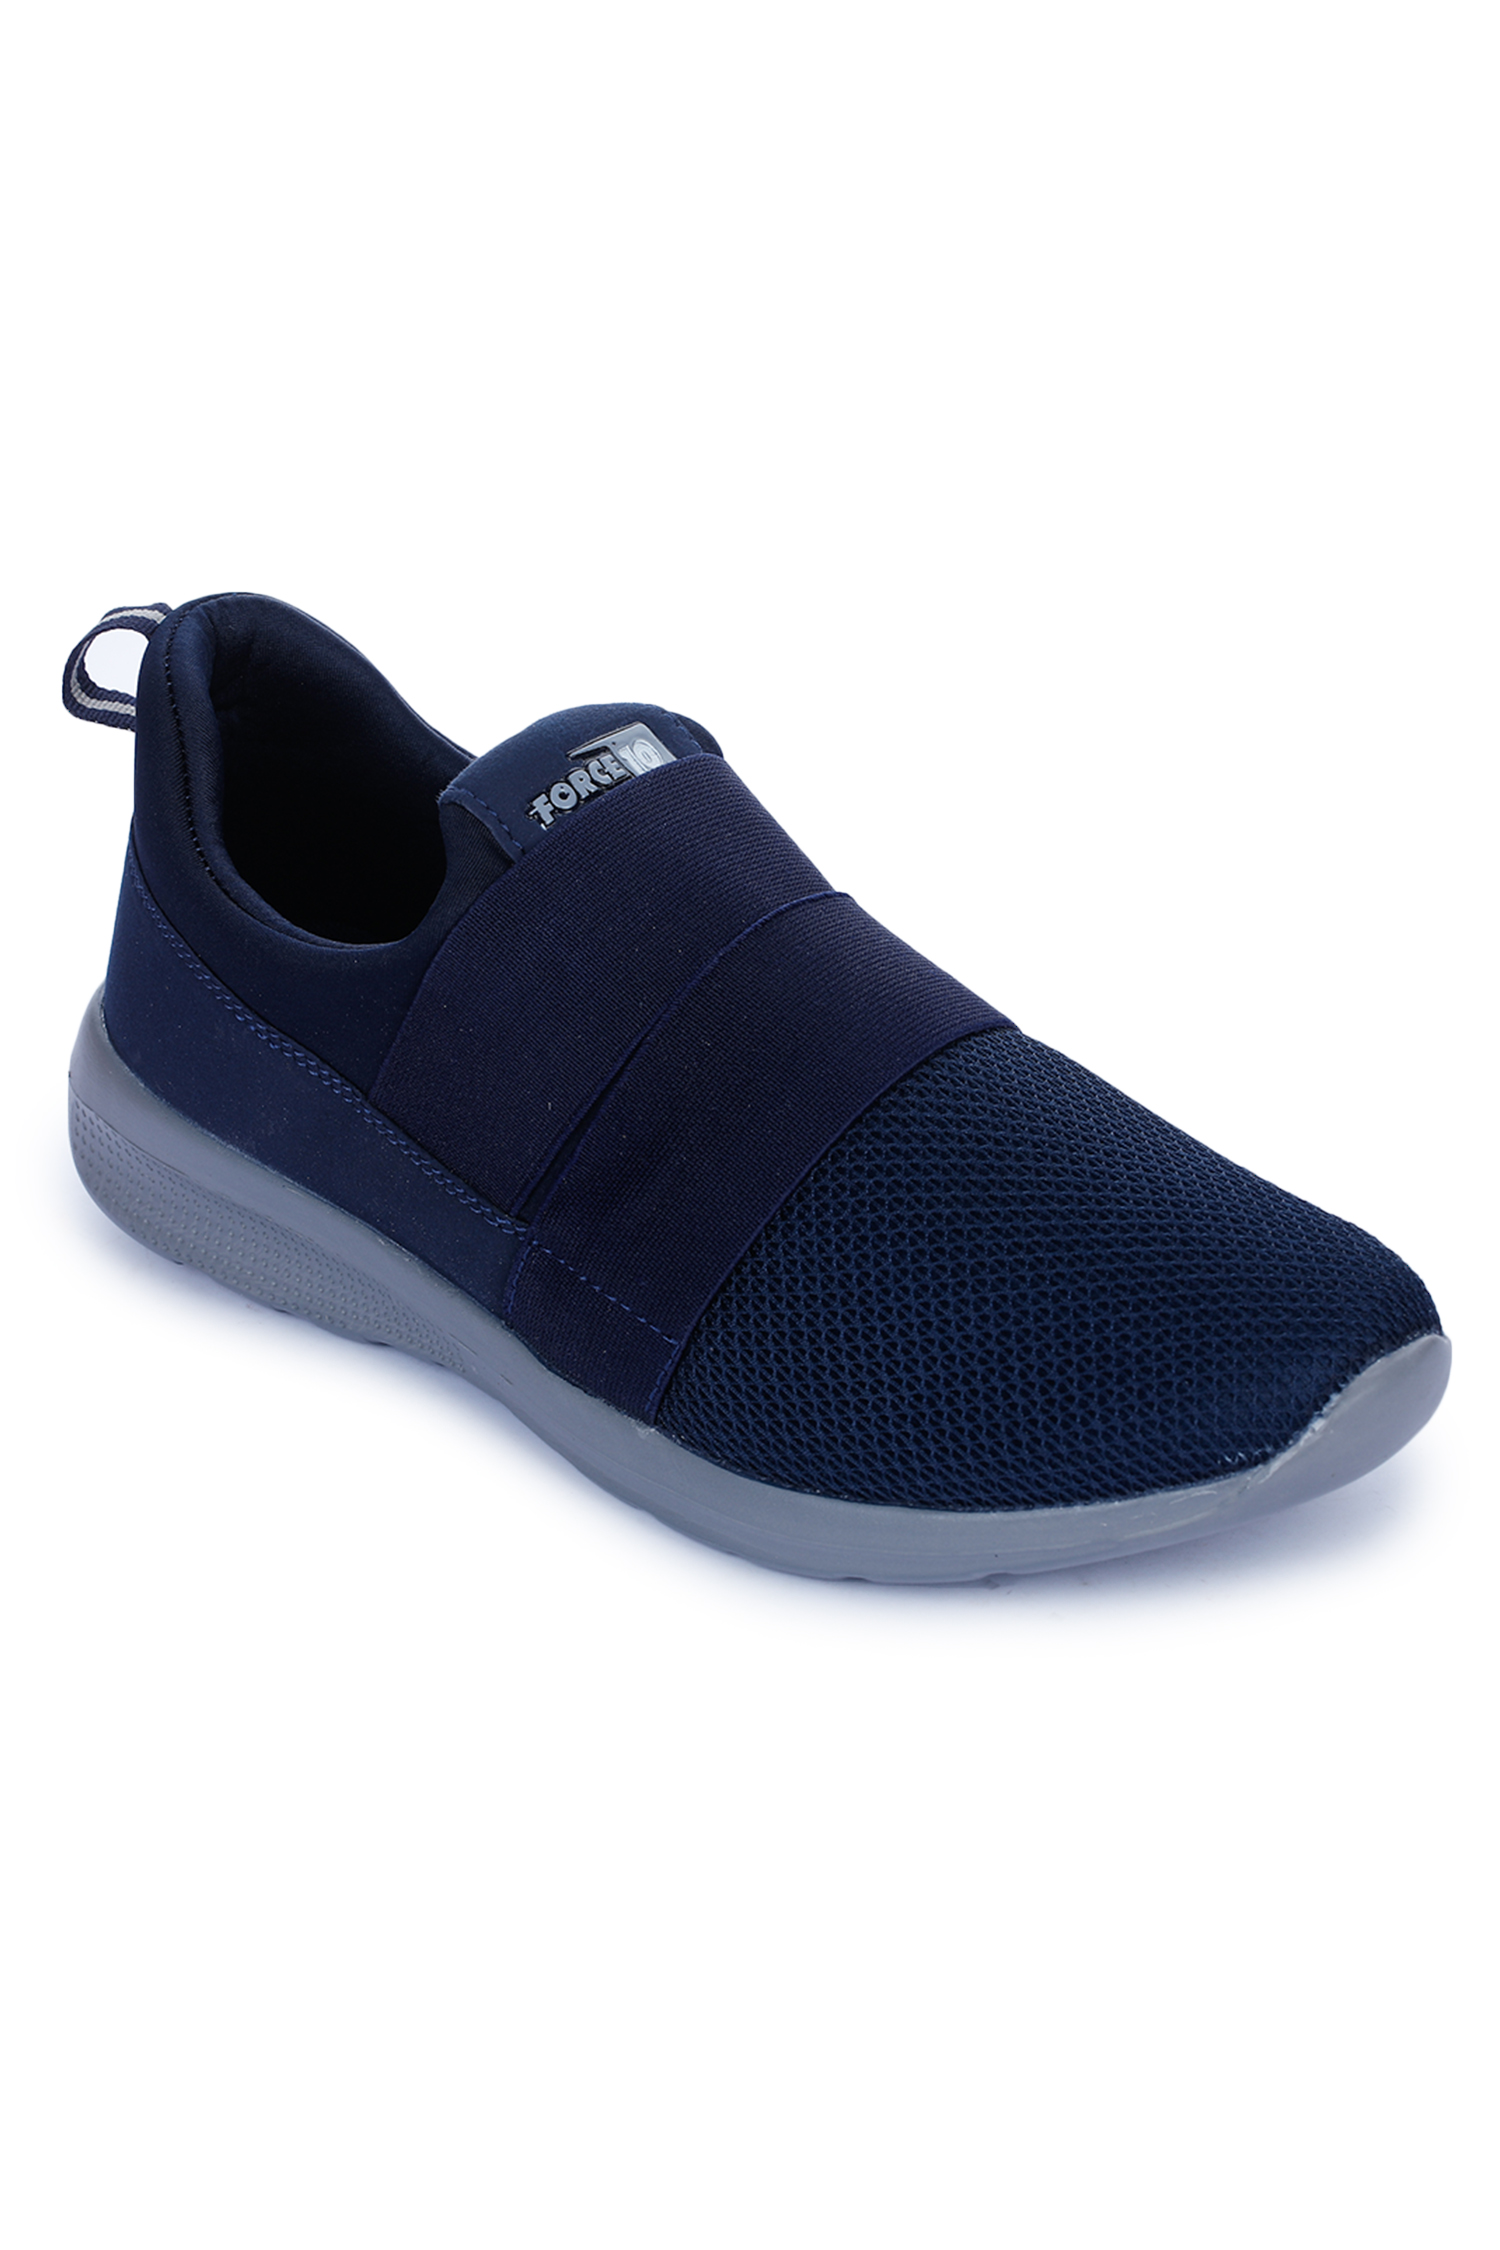 Liberty | Liberty Force 10 Blue Sports Wailking Shoes MILLER-5_Blue For - Men